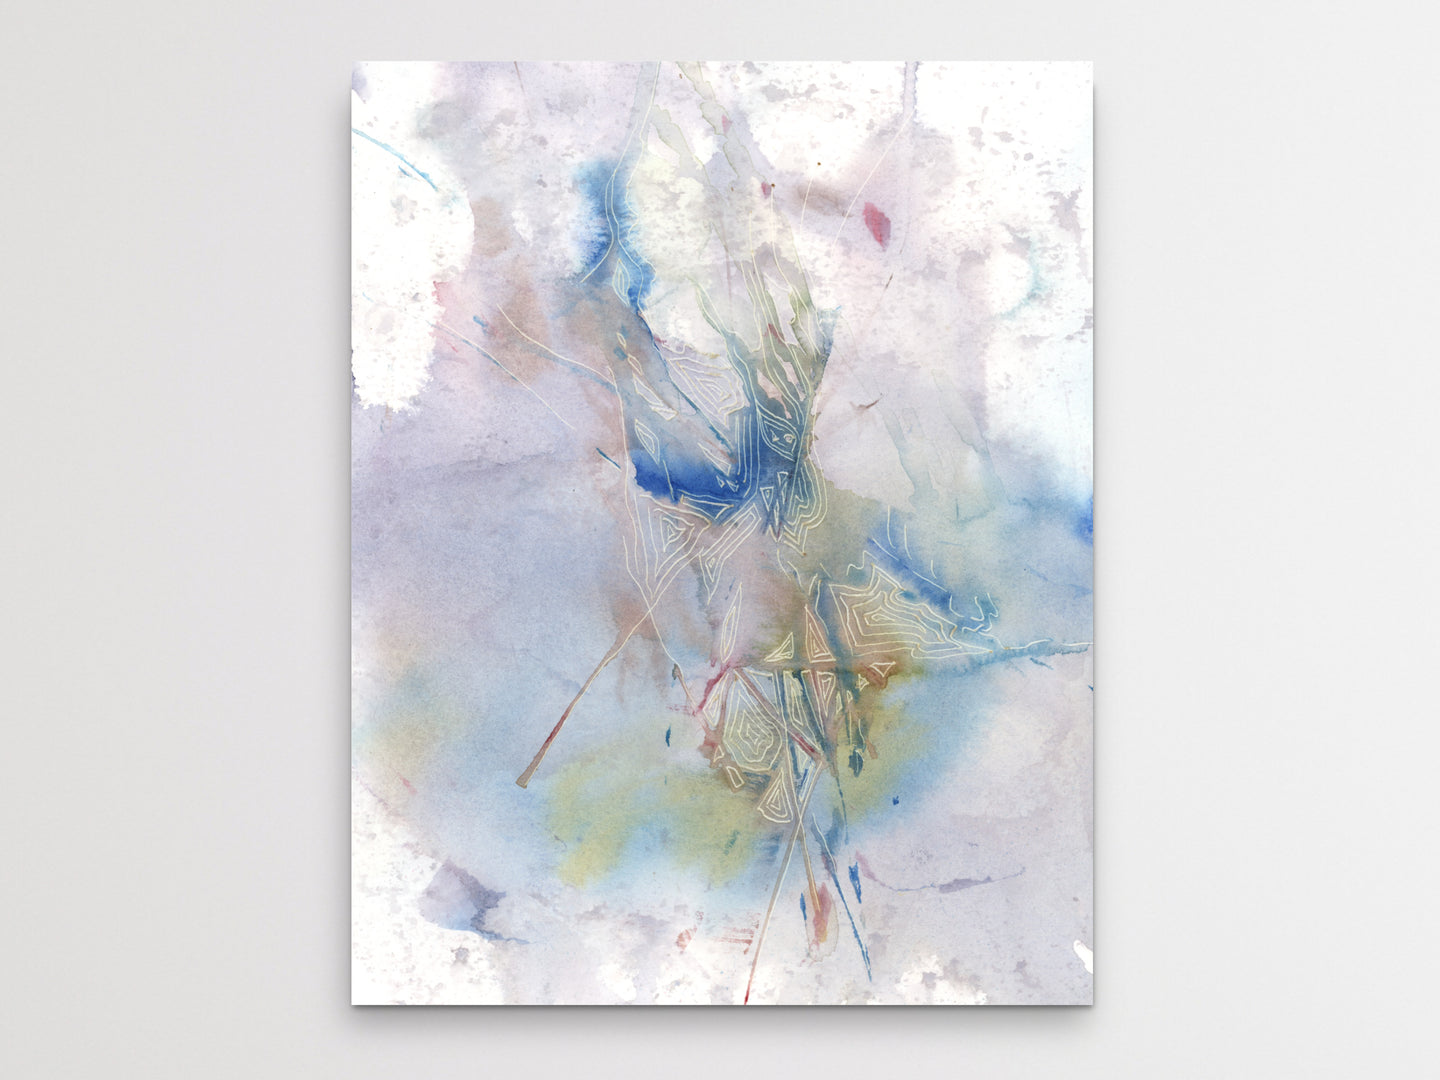 Abstract Watercolor and Etch Art Print